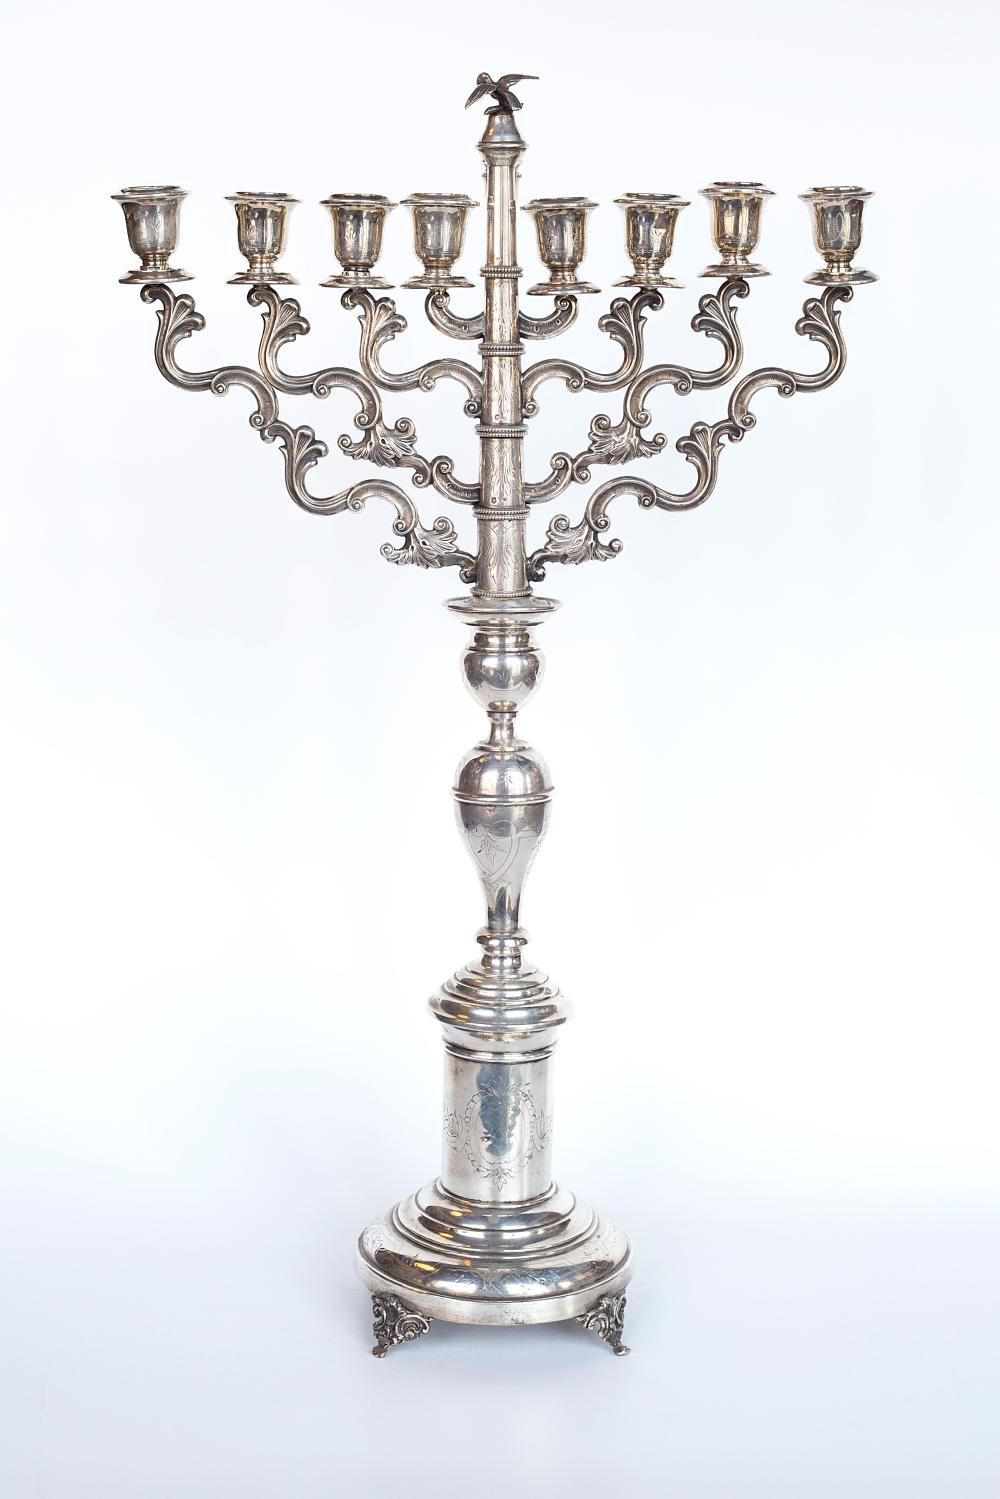 Late 18th century, hallmarked Silver transformable Menora/Candle stick